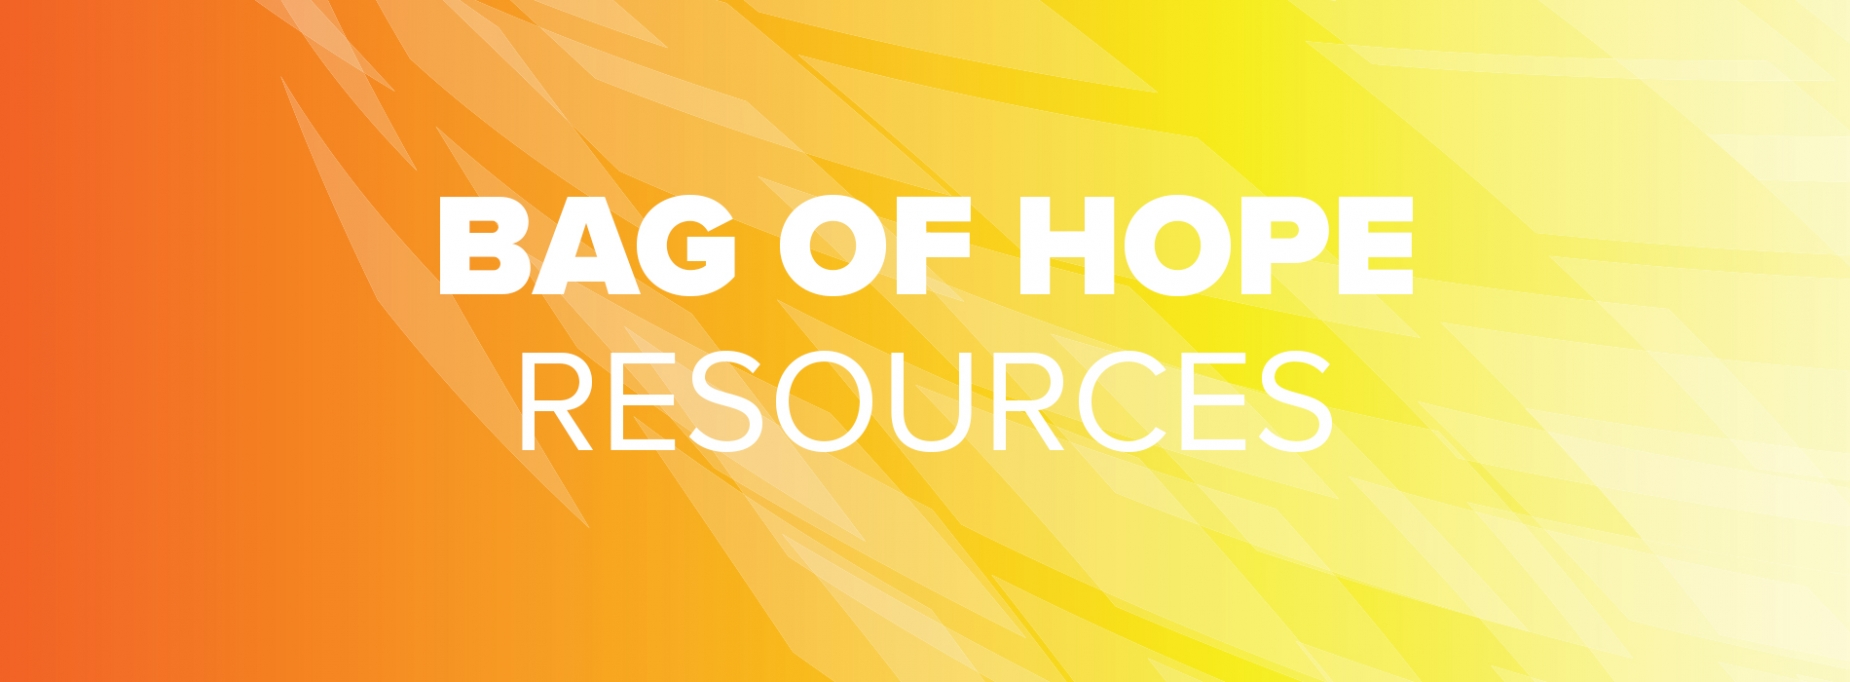 Bag of Hope Resources